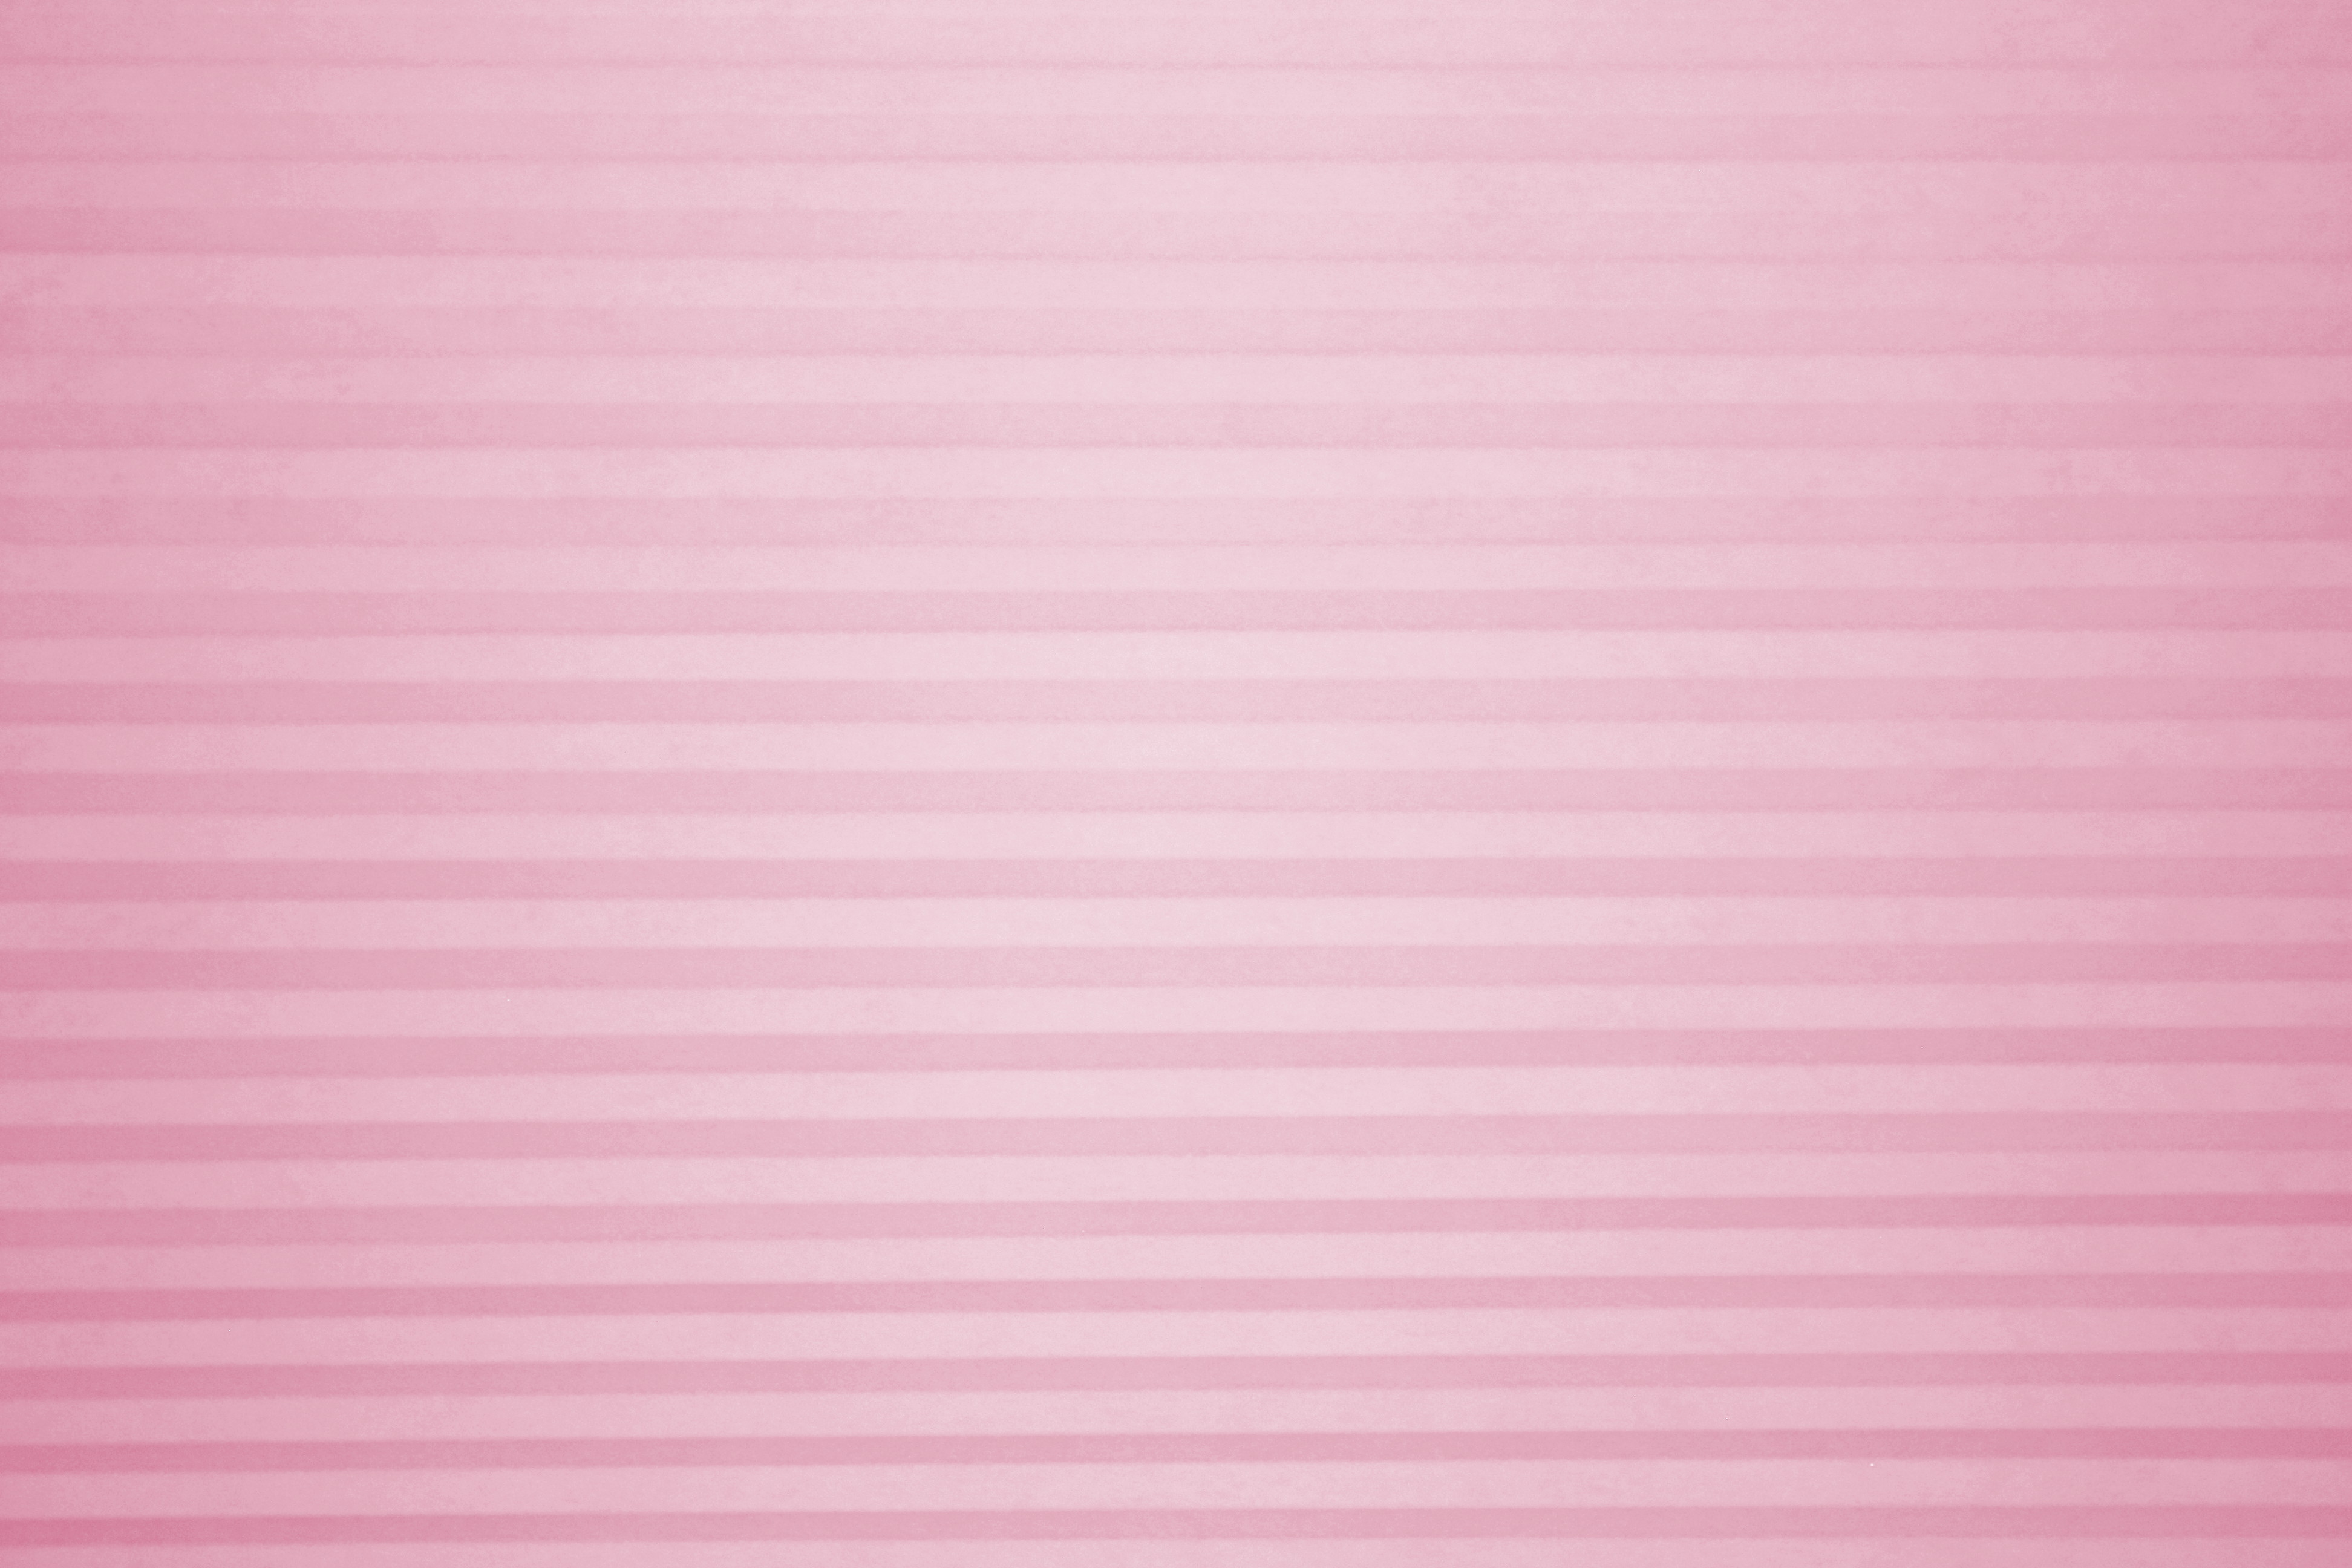 Pink Cellular Shade Texture Picture Free Photograph